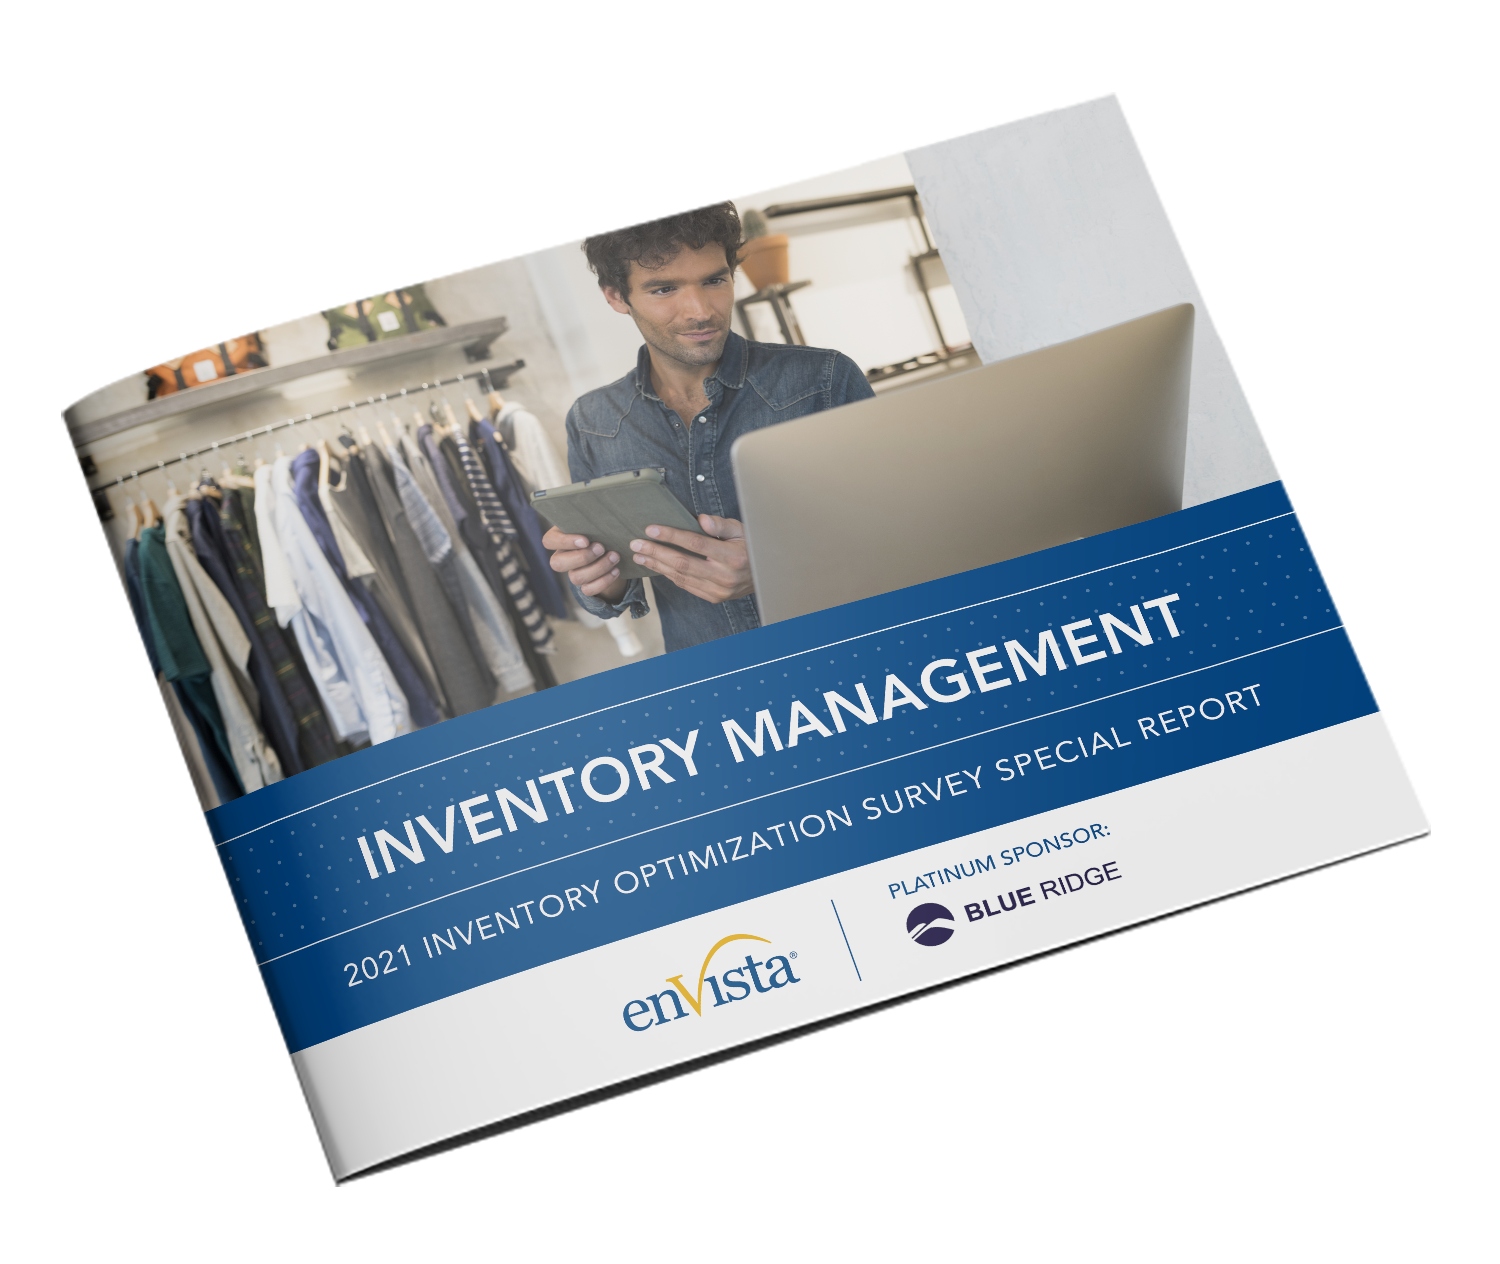 inventory_mgmt_cover_imagery.png-(2) (1)